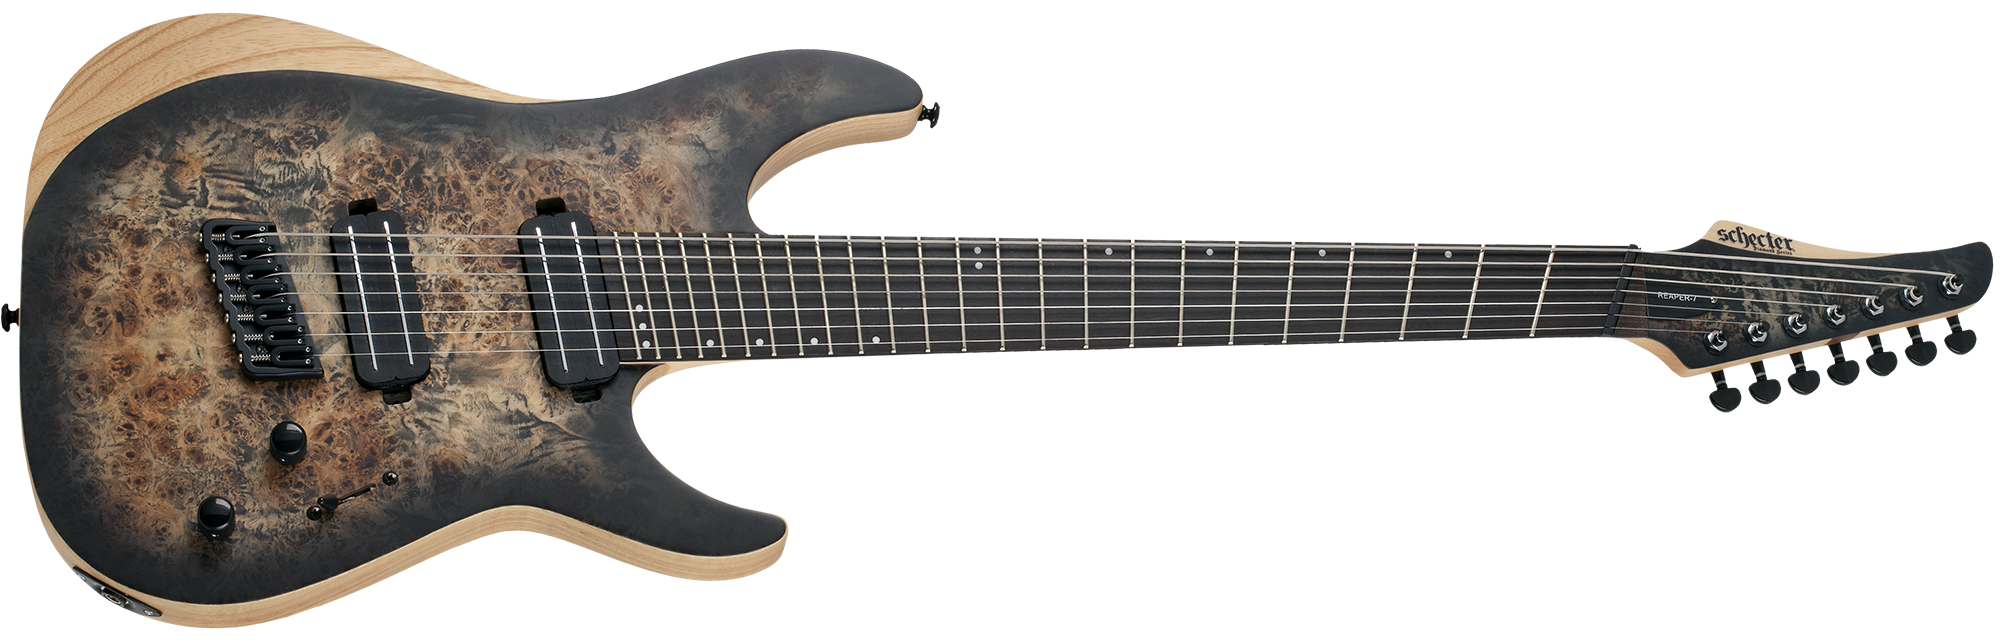 Reaper-7 Multiscale Satin Charcoal Burst (SCB) SKU #1509